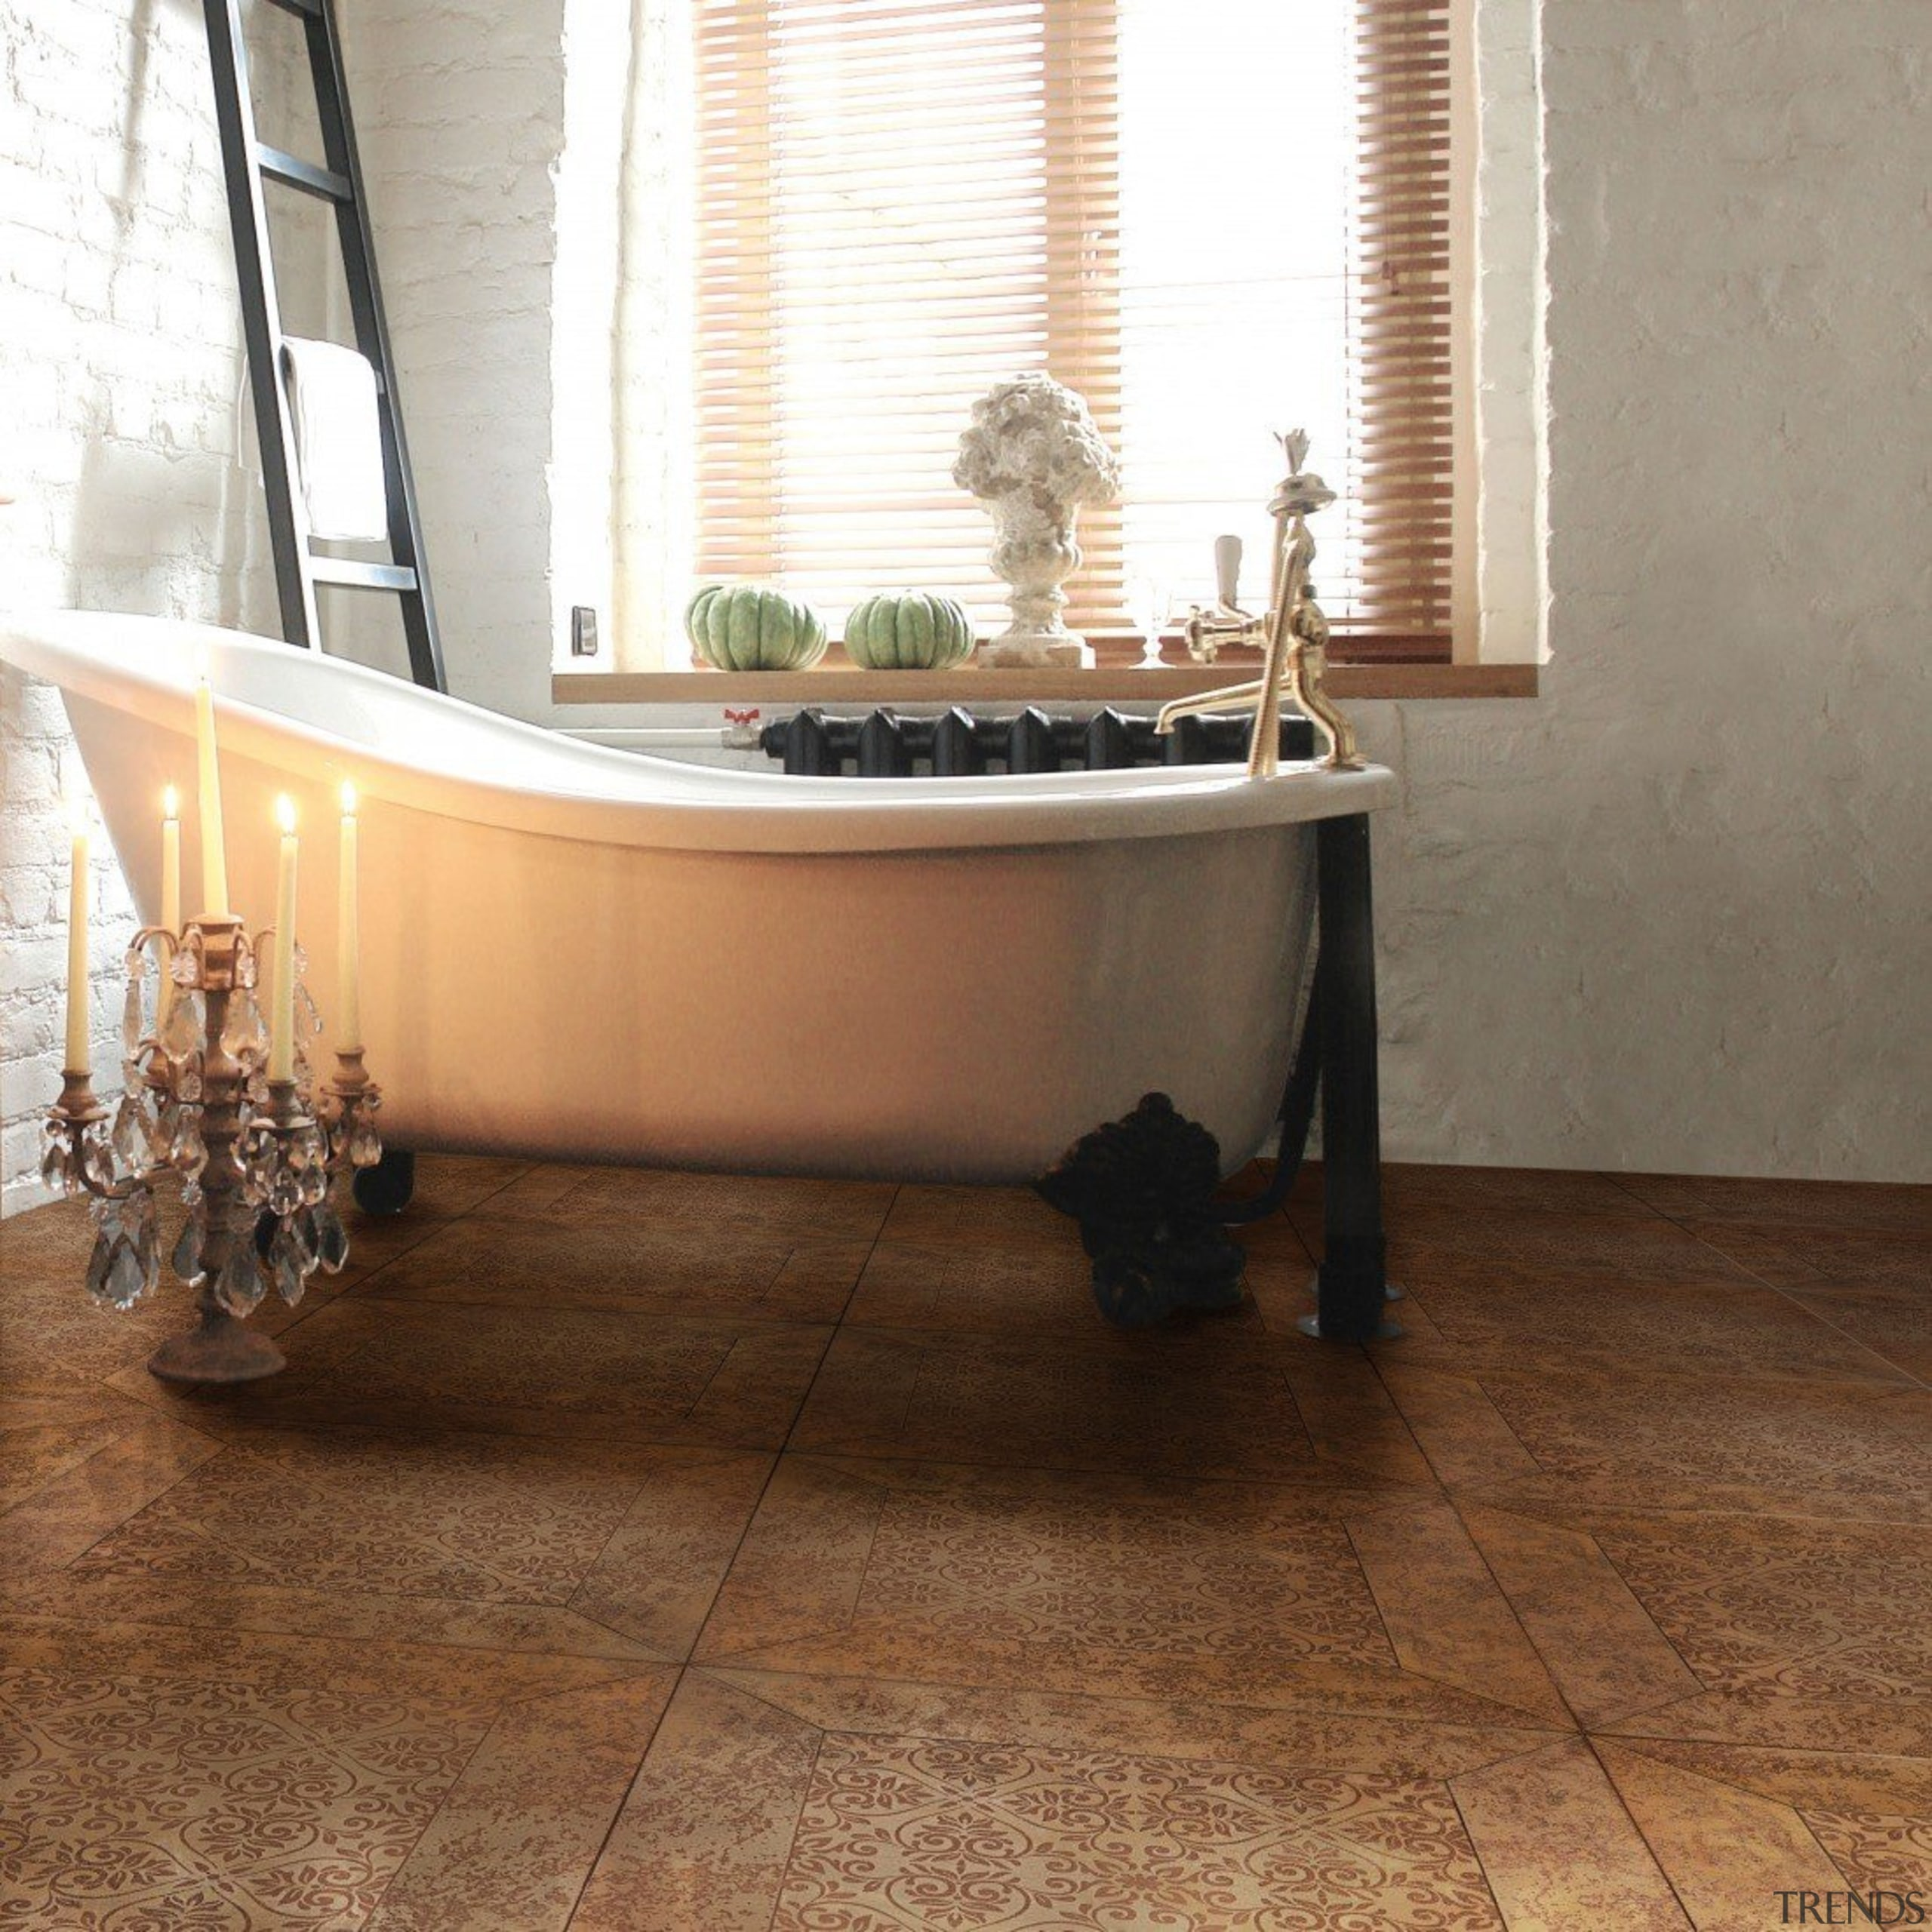 Siena Sun - bathtub | floor | flooring bathtub, floor, flooring, furniture, hardwood, interior design, laminate flooring, property, tile, wood, wood flooring, brown, white